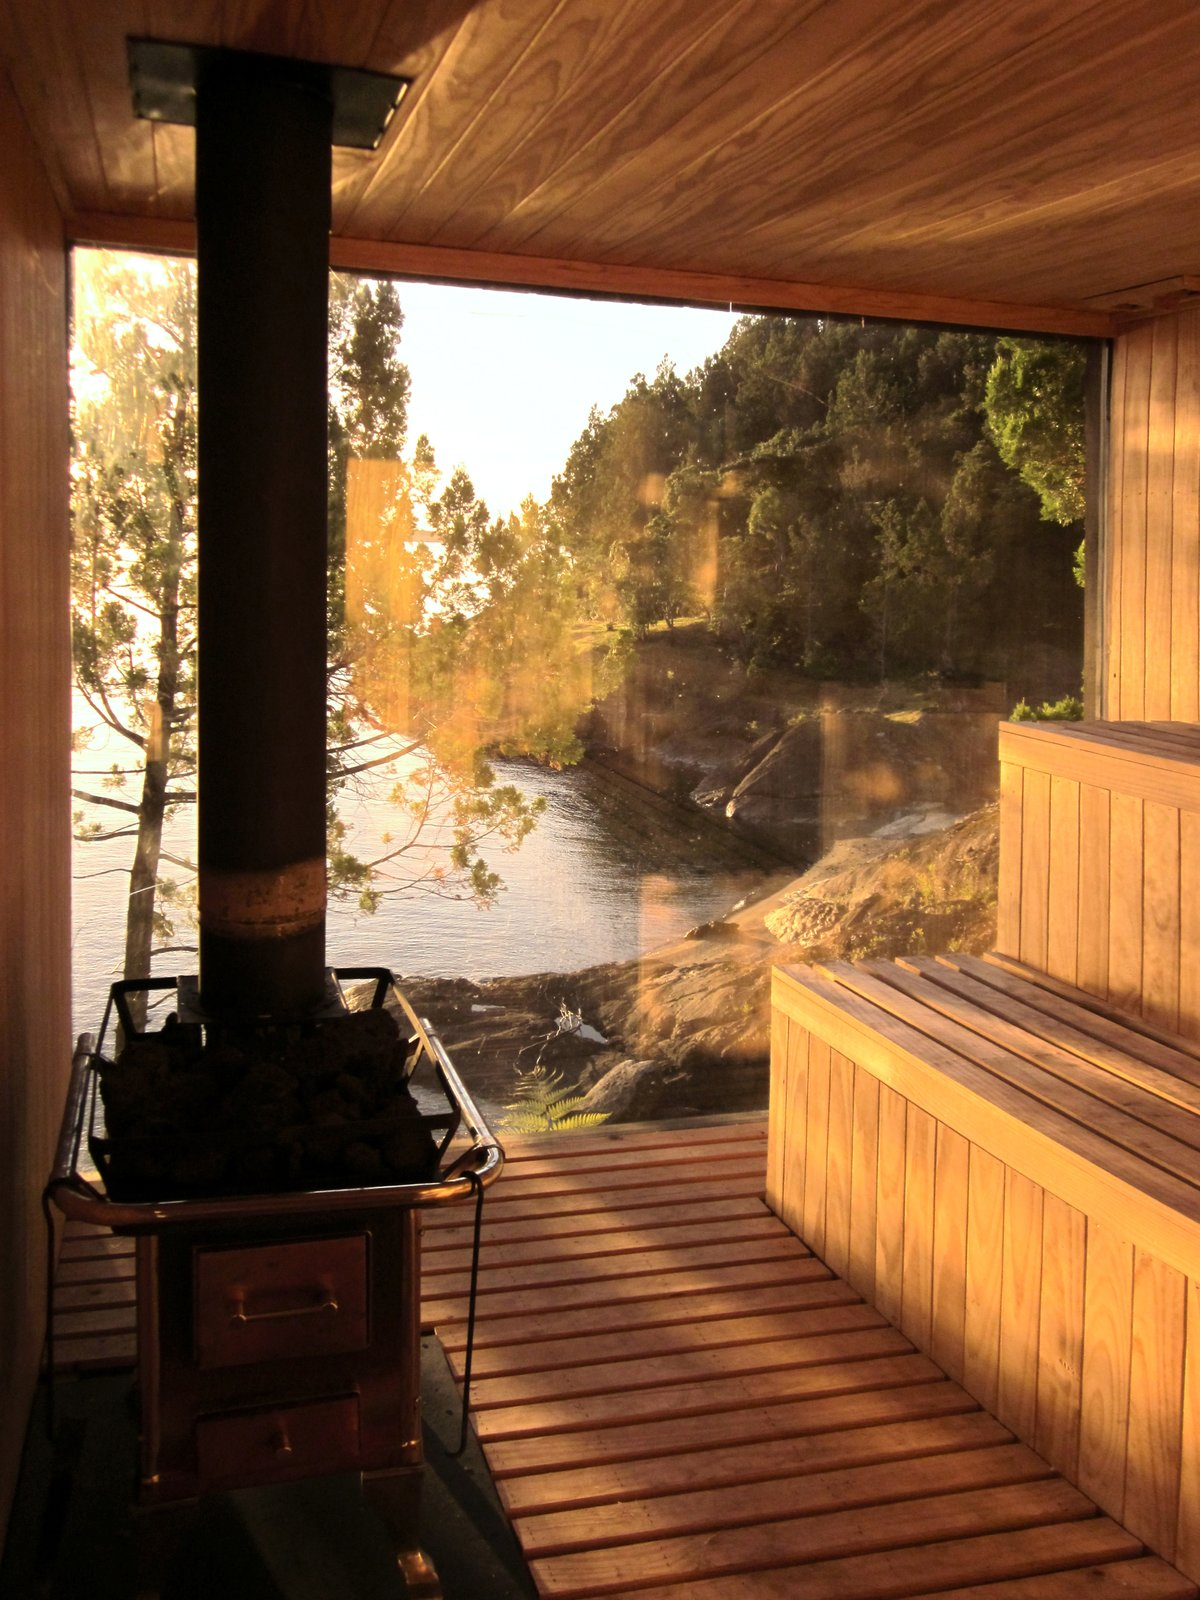 Windows, Picture Window Type, and Wood Encased with wood and glass, surrounded by trees and rocks, the sauna provides a relaxing hideaway for private lake front views.  Photo 6 of 9 in A Timber-Clad Sauna in Chile Angles For Lakeside Views